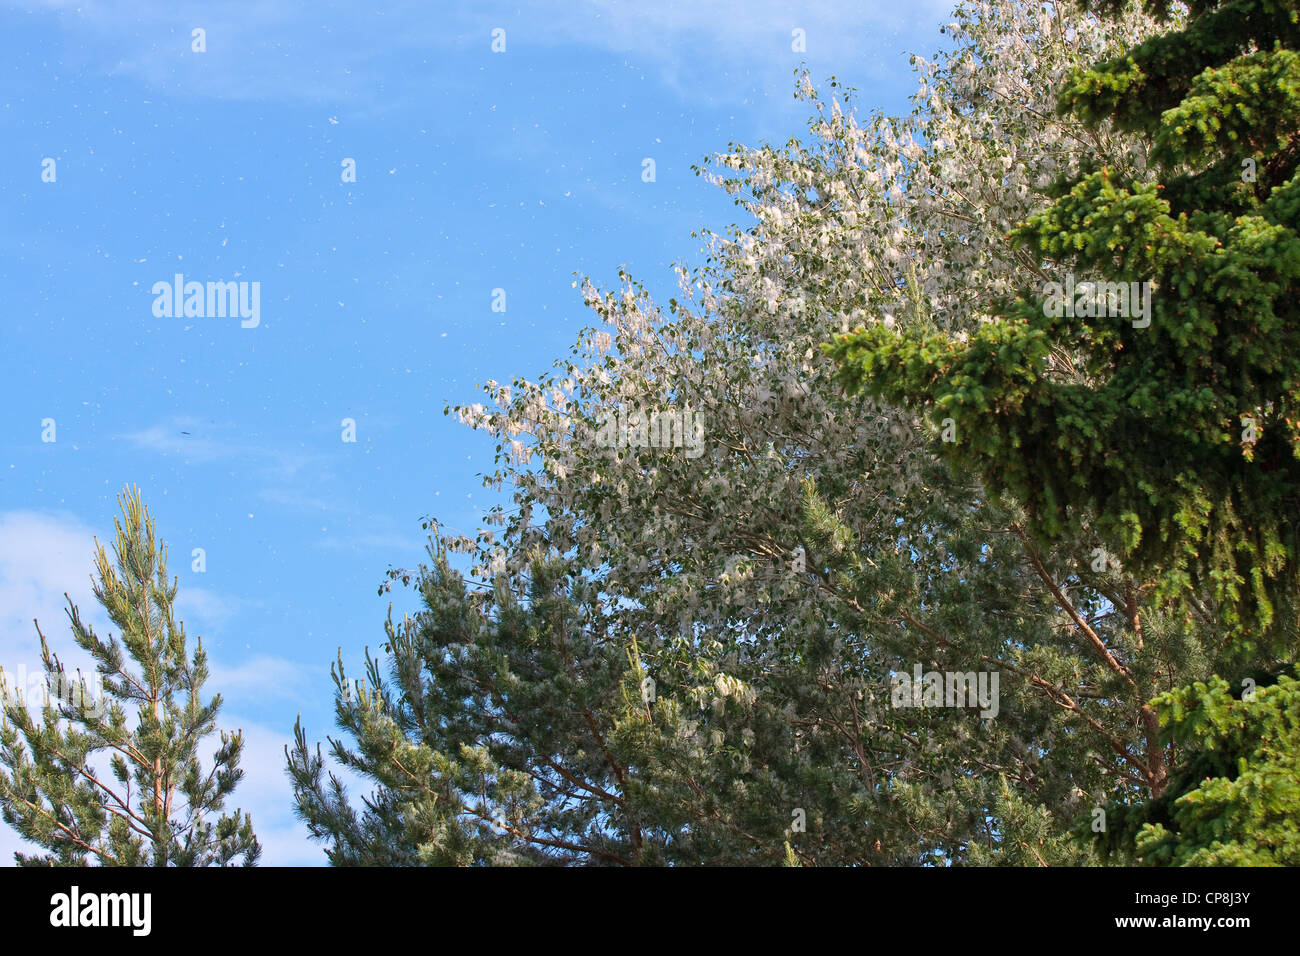 Poplar fluff drifting from trees in spring. - Stock Image